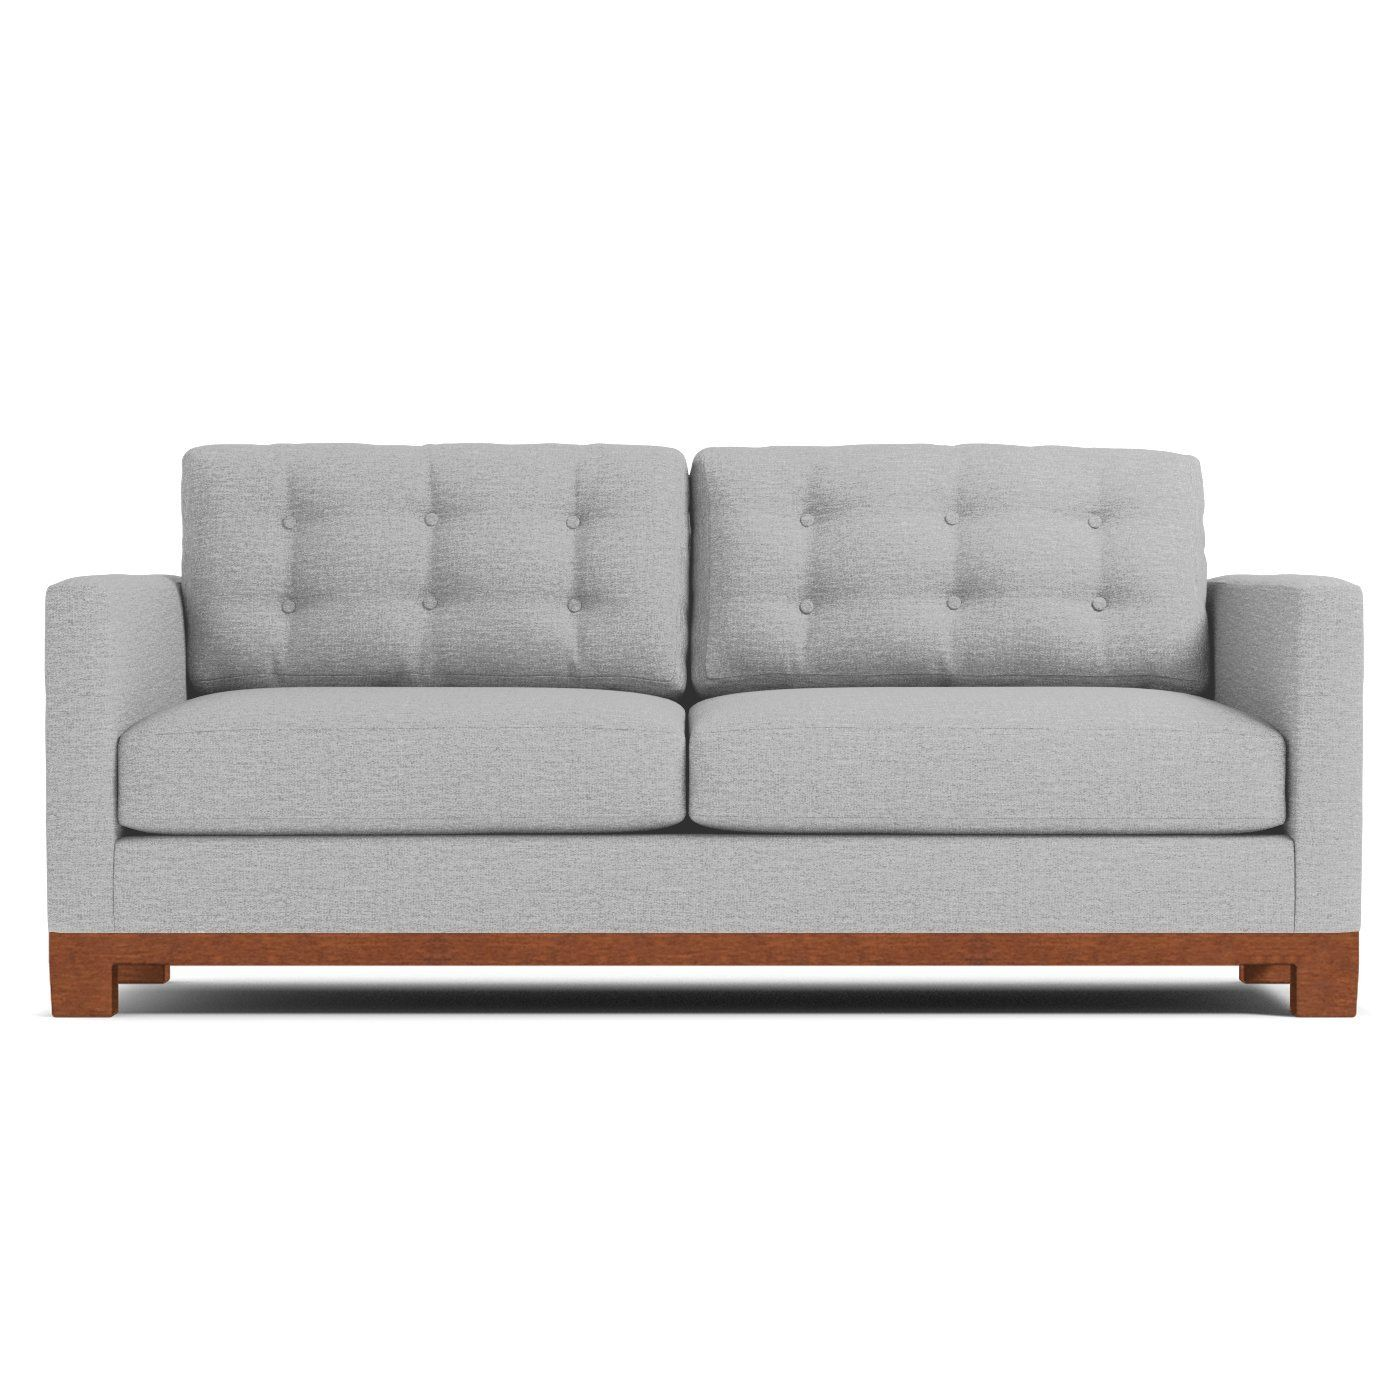 Logan Drive Sofa Leg Finish Pecan Queen Size Sleeper Sofa